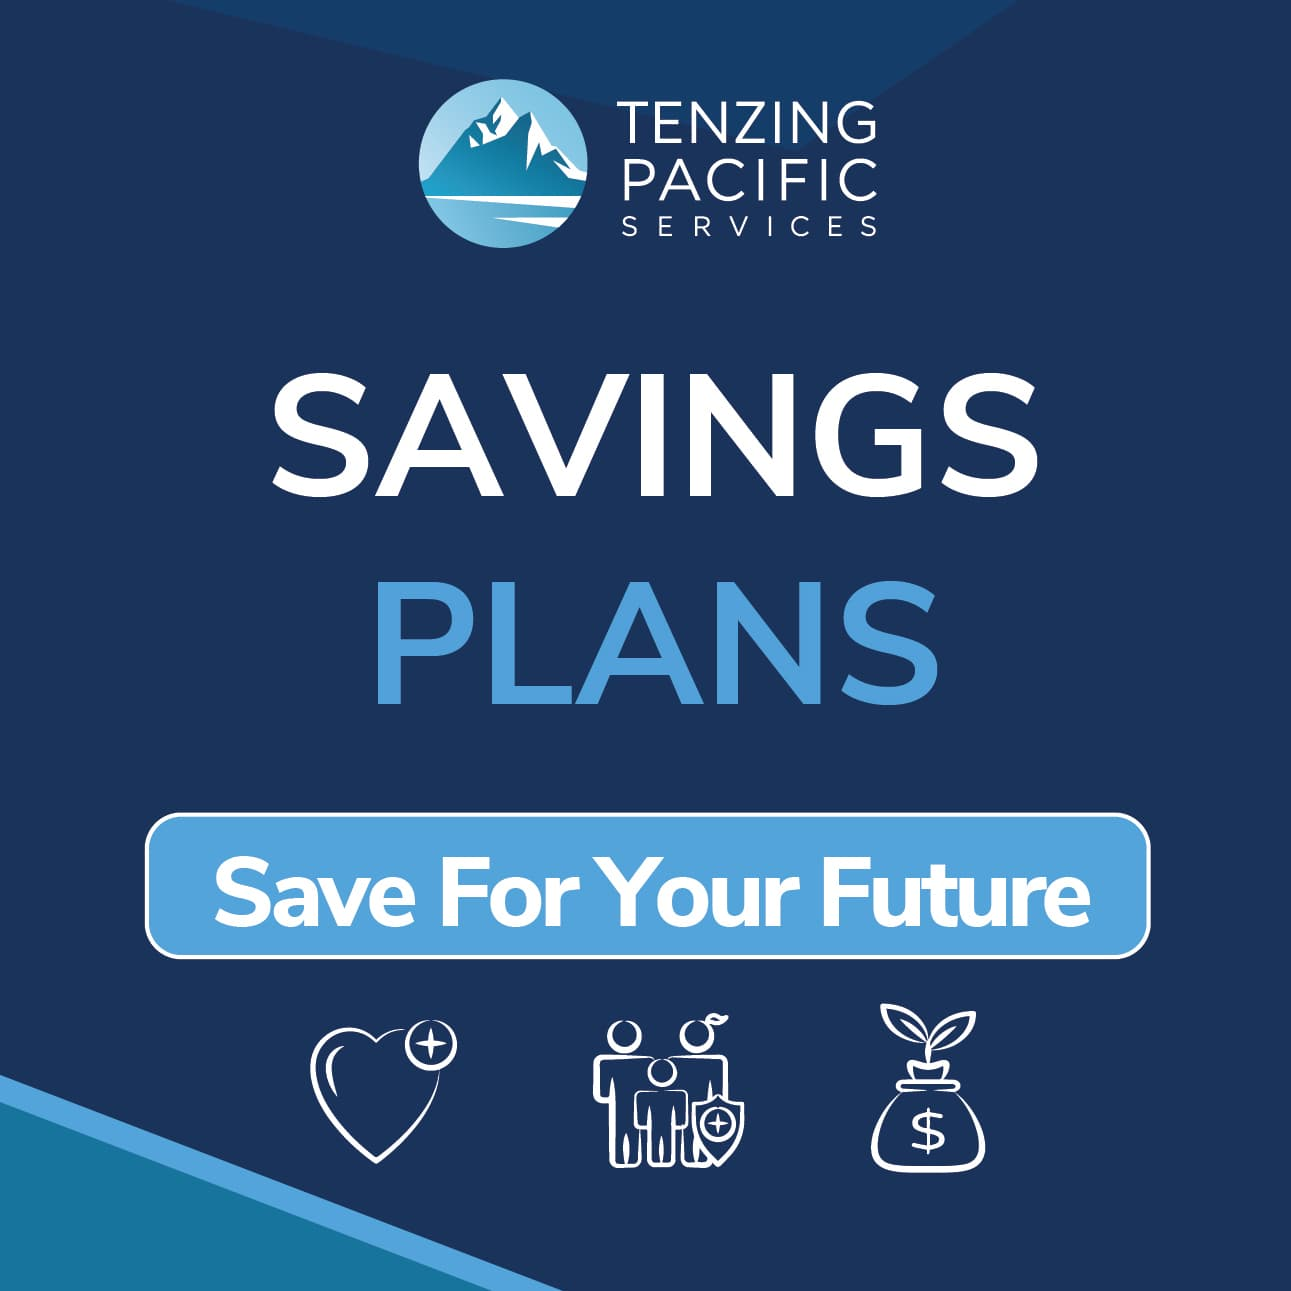 Savings Plans Tenzing Pacific Services square